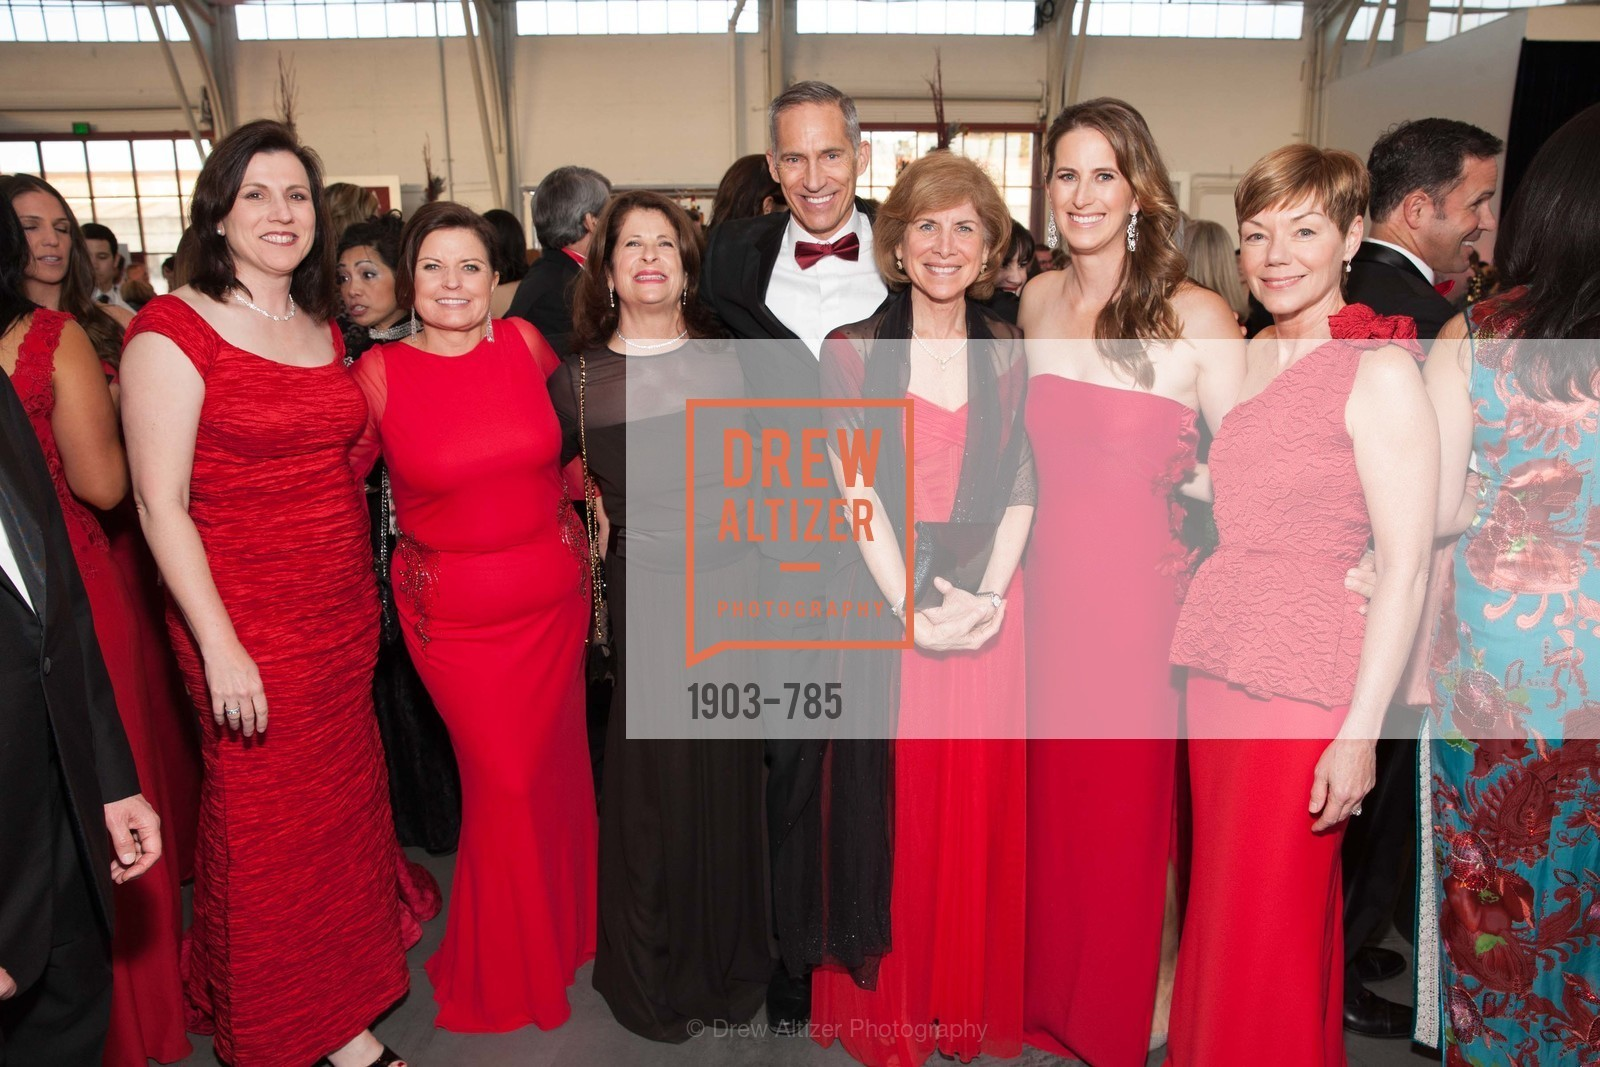 Alexandra Pastor, Elizabeth Folger, Kathryn Holmes, Mark Cloutier, Gail McGovern, Kelly Murphy, Paula Downey, 2015 RED CROSS Gala, US, April 12th, 2015,Drew Altizer, Drew Altizer Photography, full-service agency, private events, San Francisco photographer, photographer california